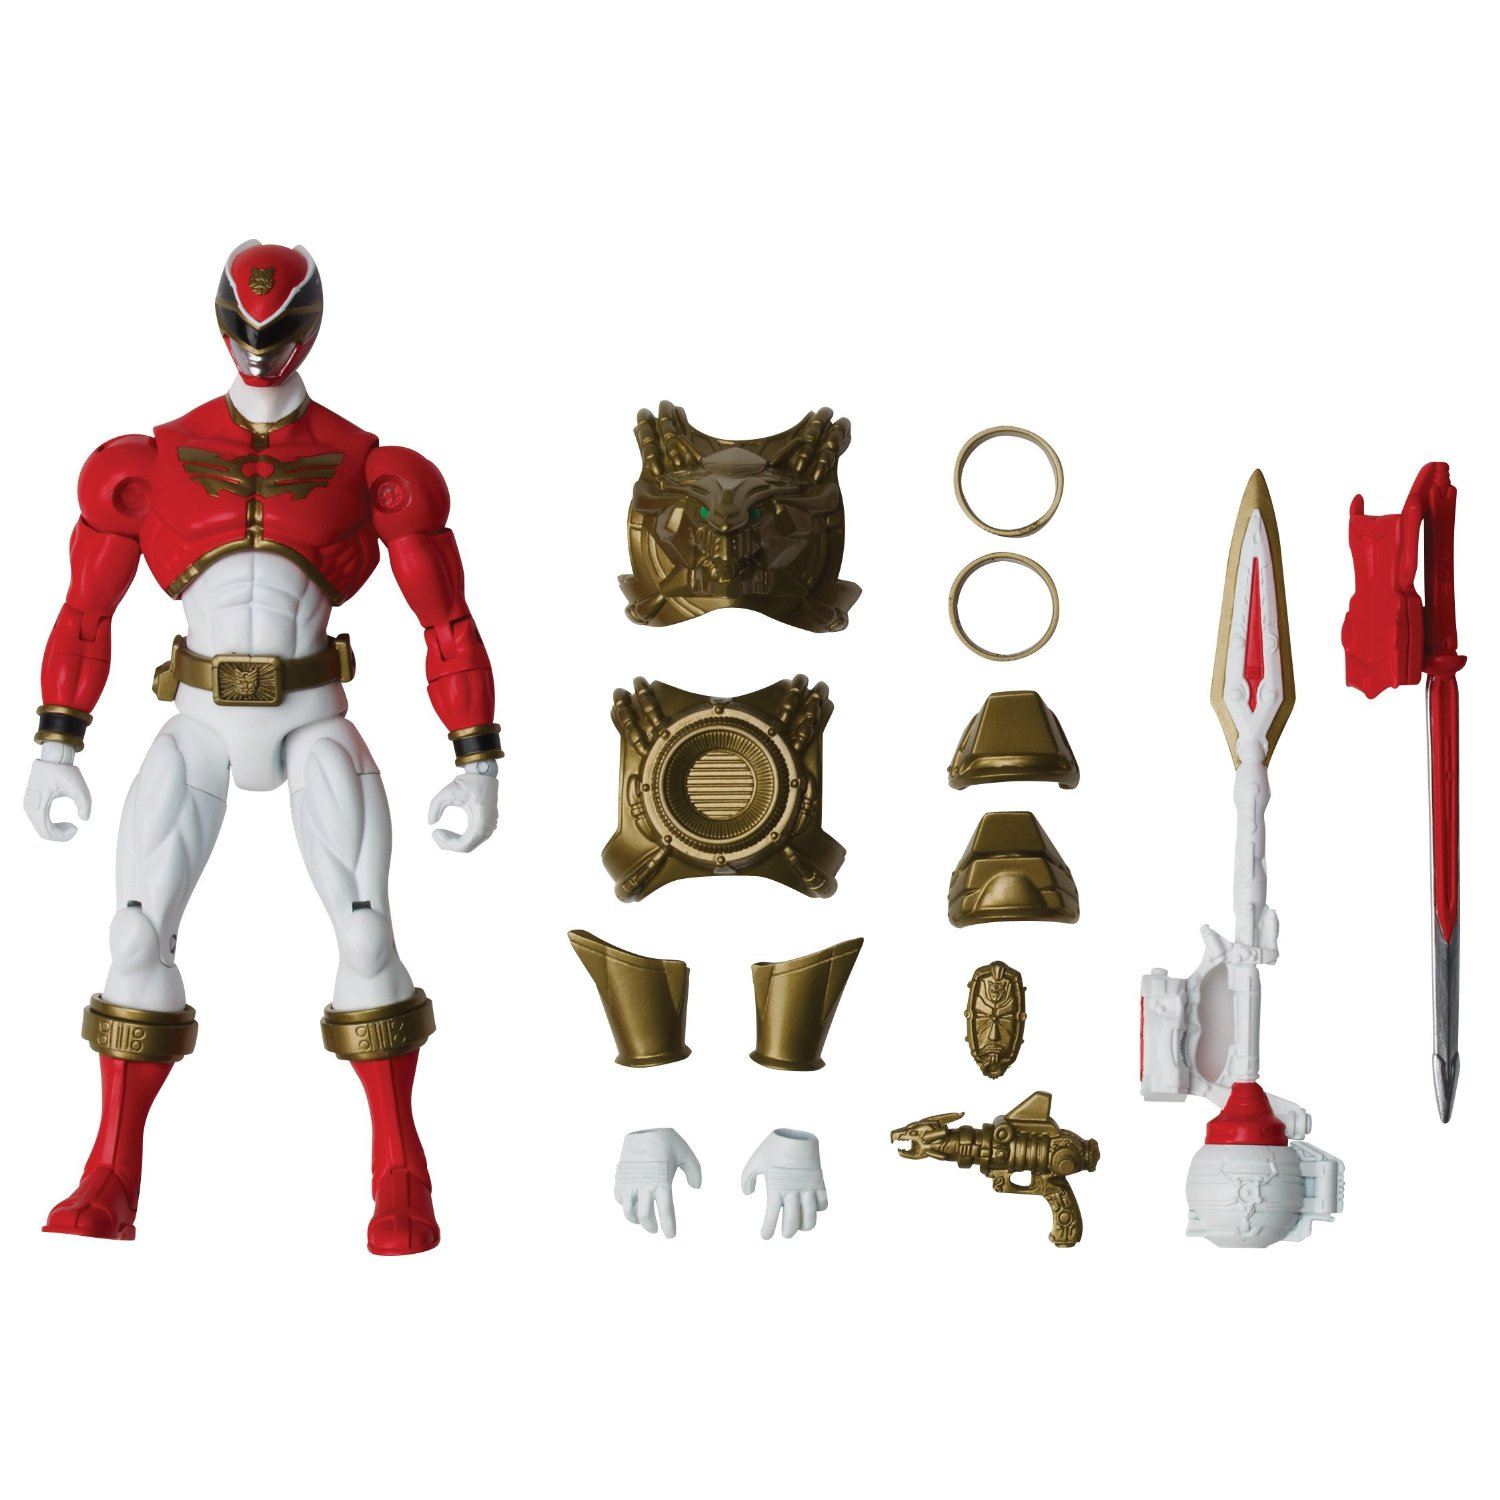 henshin grid details and spoilers for power rangers megaforce